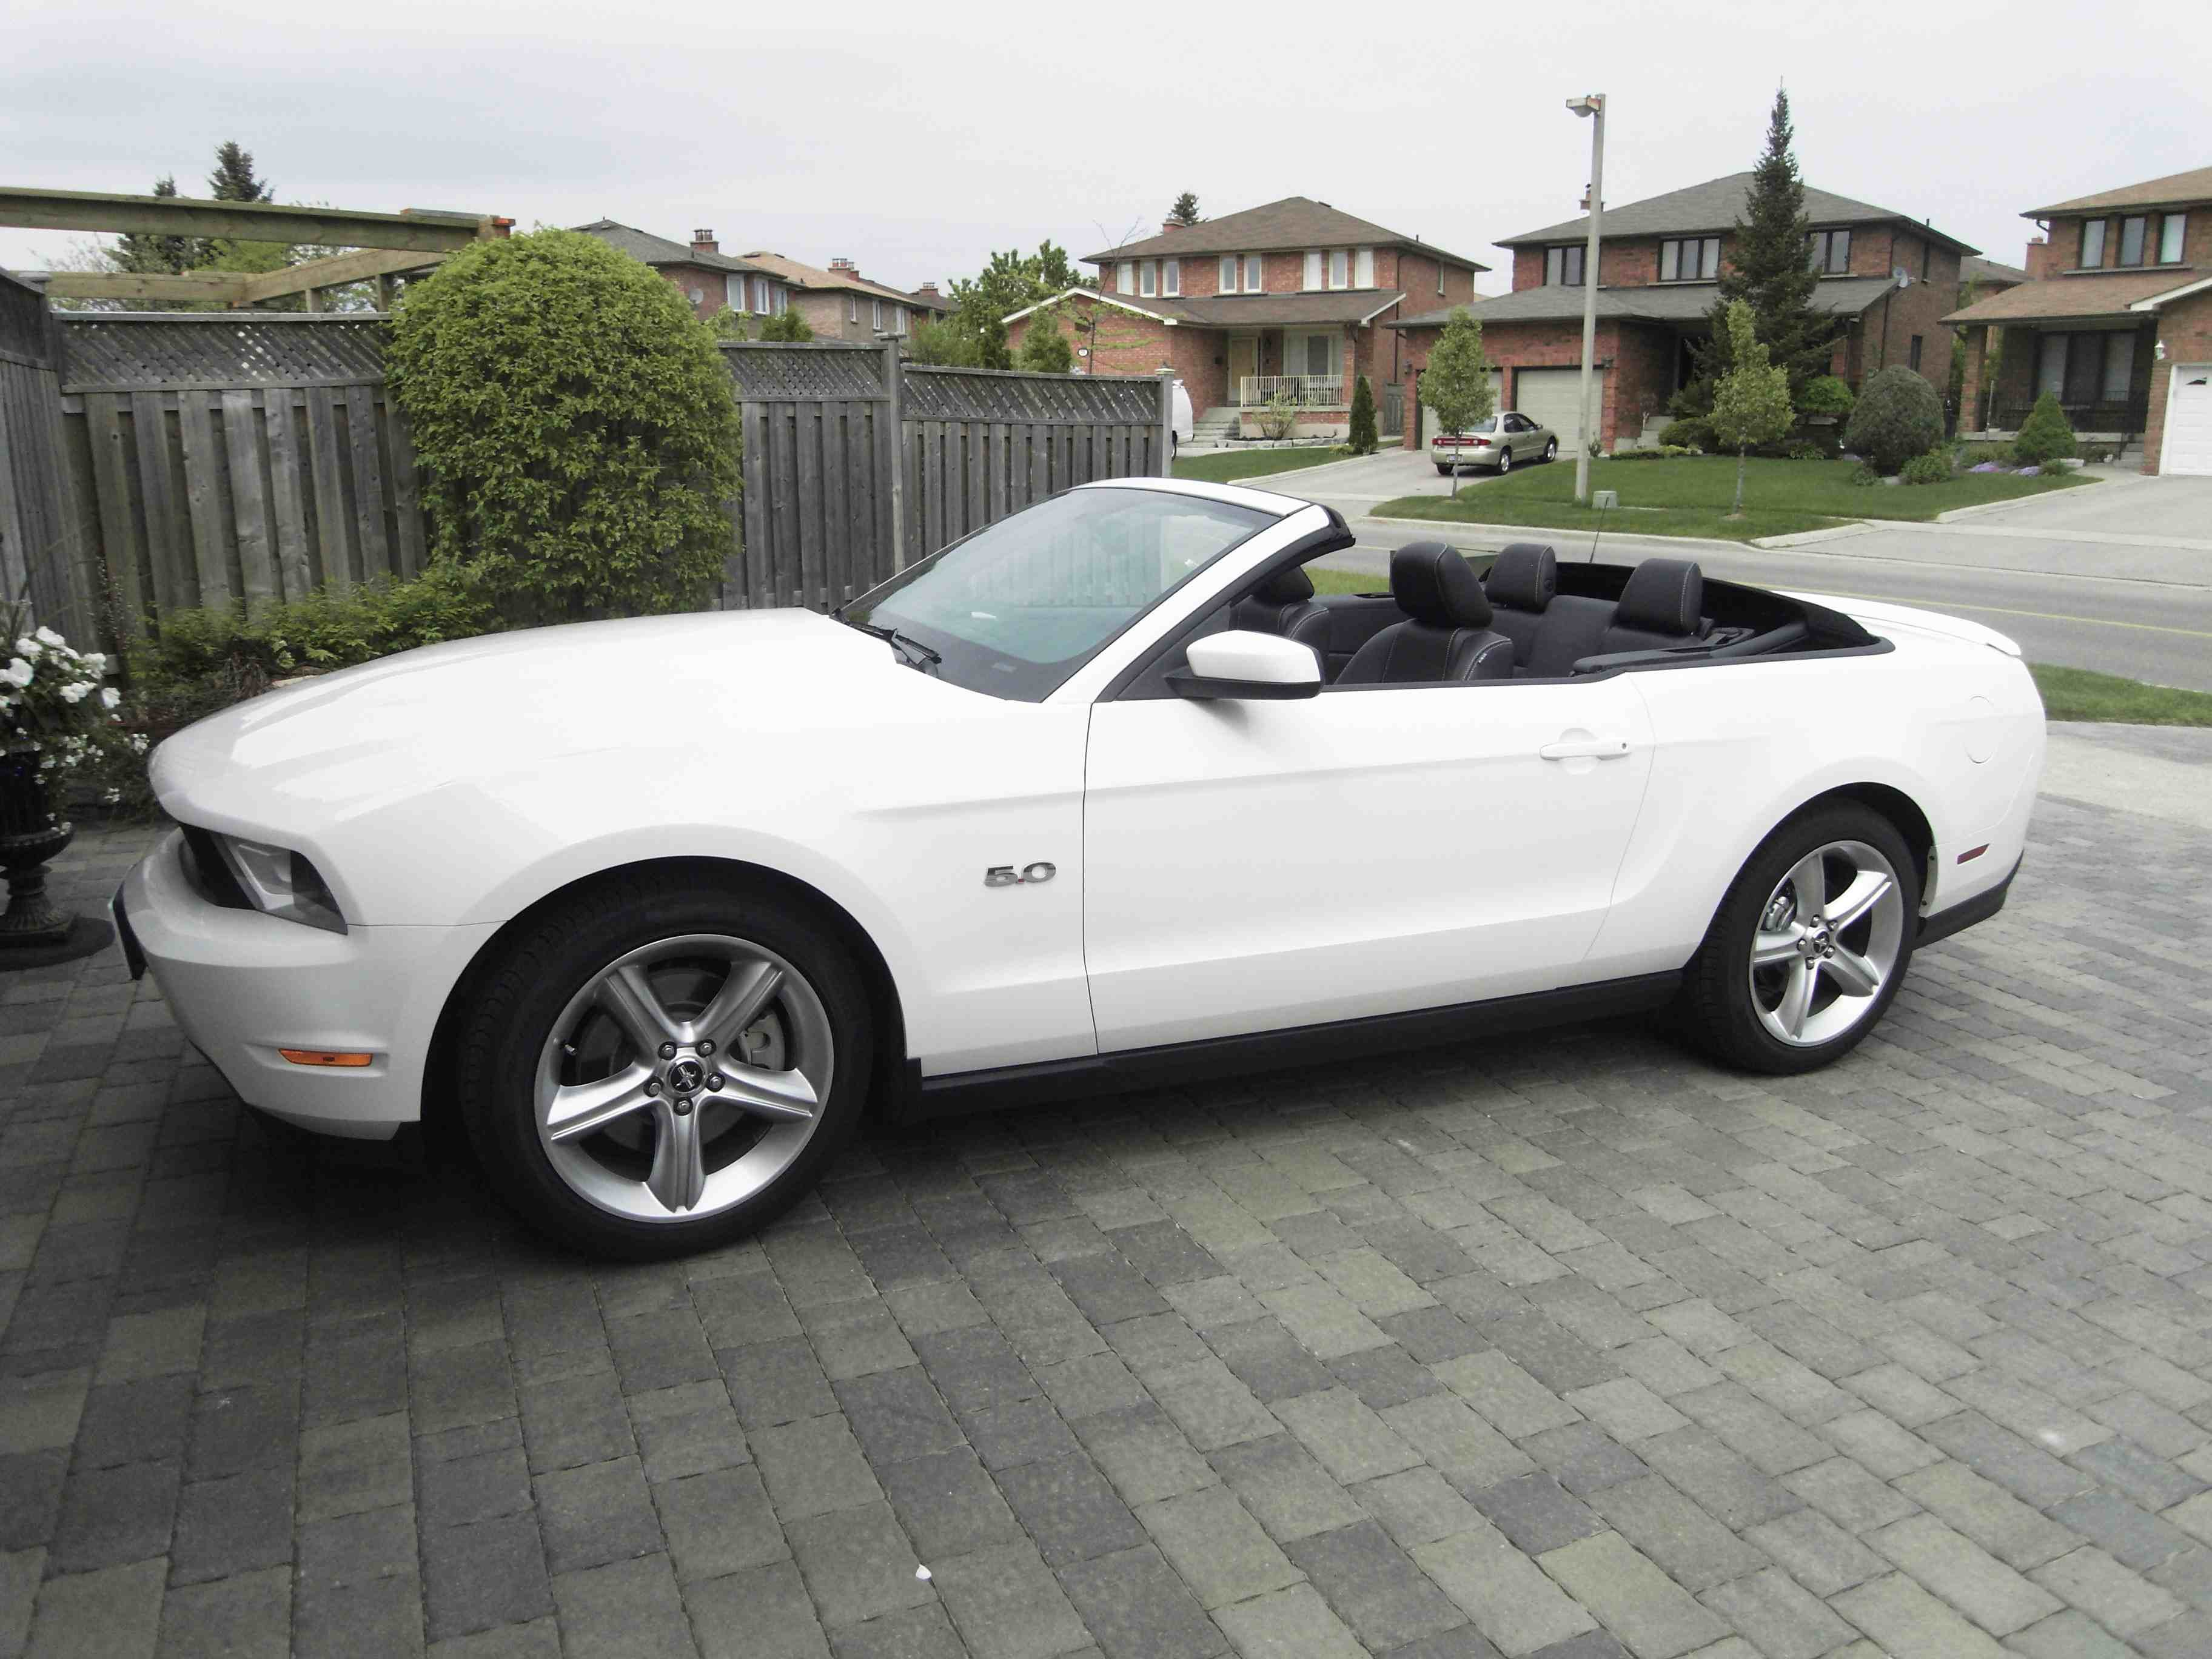 2012 mustang gt performance white w stripes ford. Black Bedroom Furniture Sets. Home Design Ideas